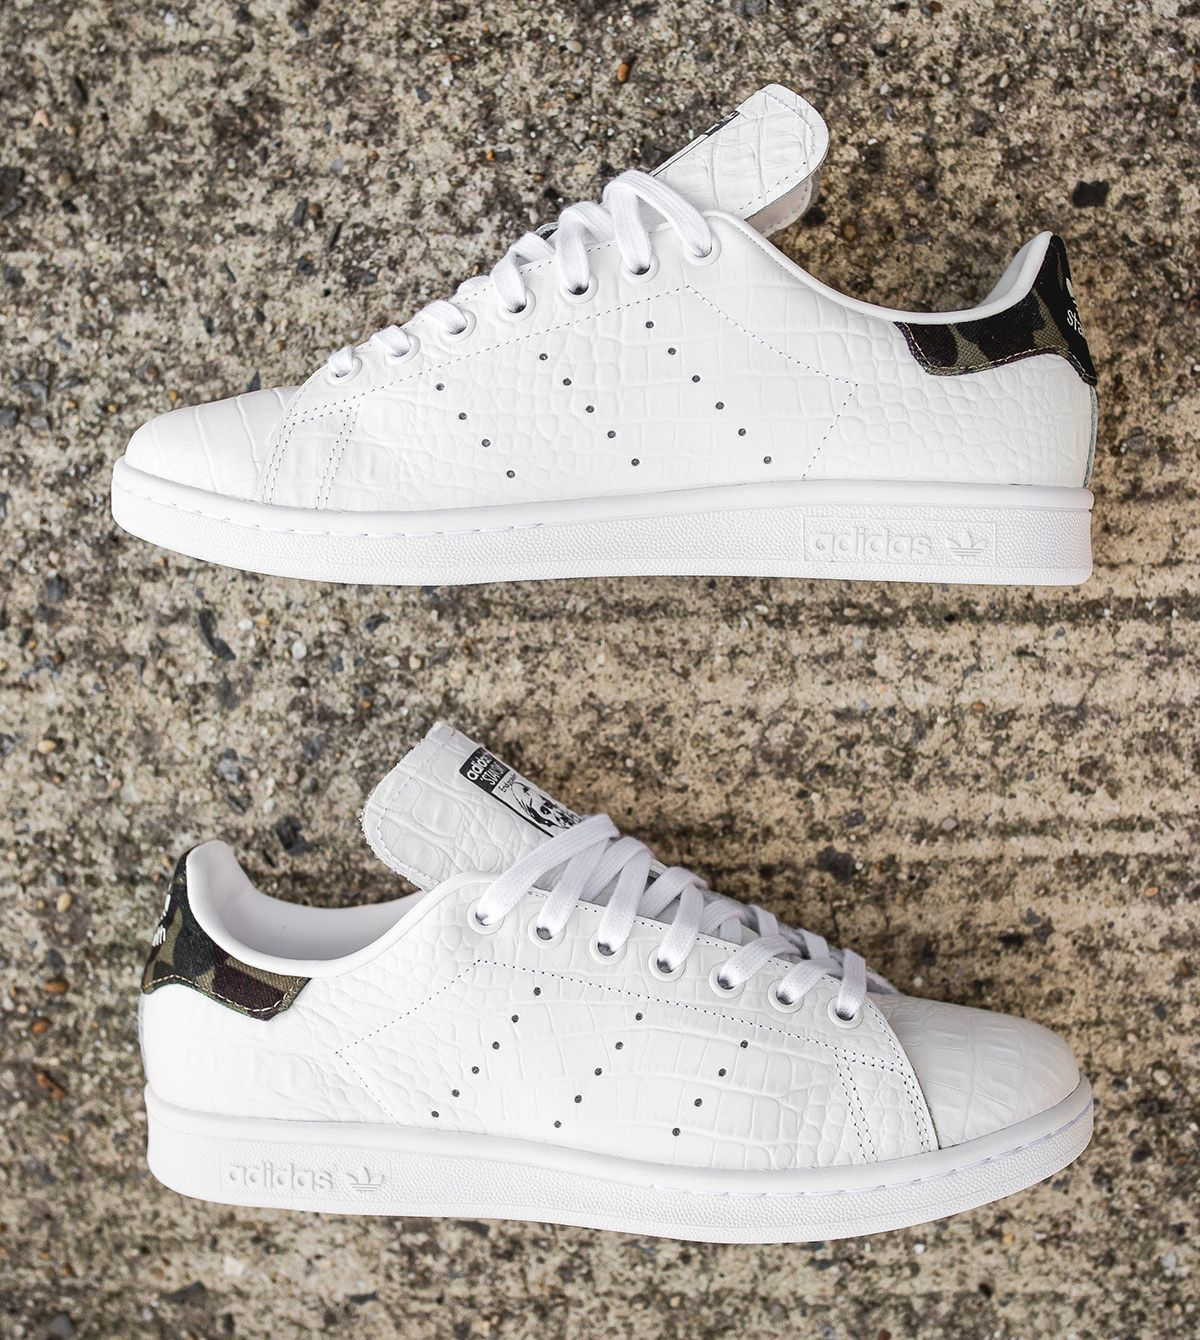 1a24091f8b5 adidas Stan Smith  Croc   Camo  (10 Detailed Pictures) - EU Kicks  Sneaker  Magazine